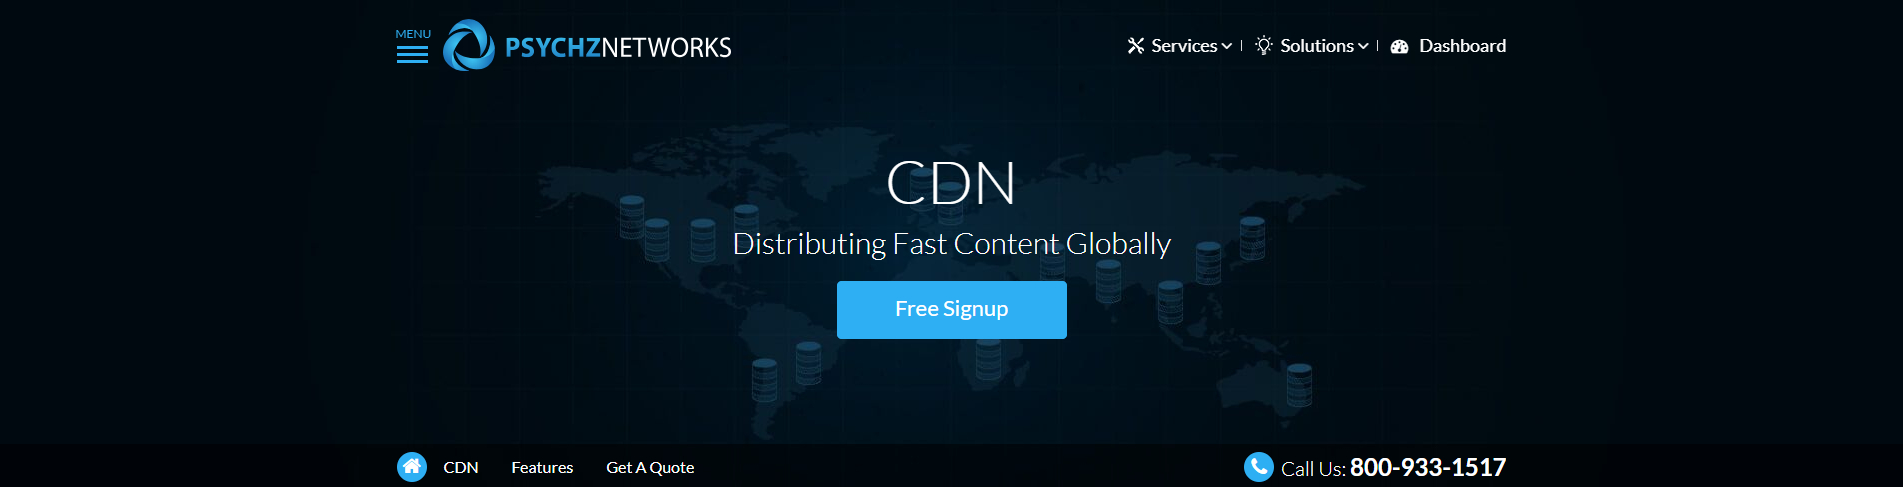 PSYCHZ: 提供 免费 CDN(Global Game Accelerator) / 免费 全球游戏加速器 (Global Content Delivery Network)